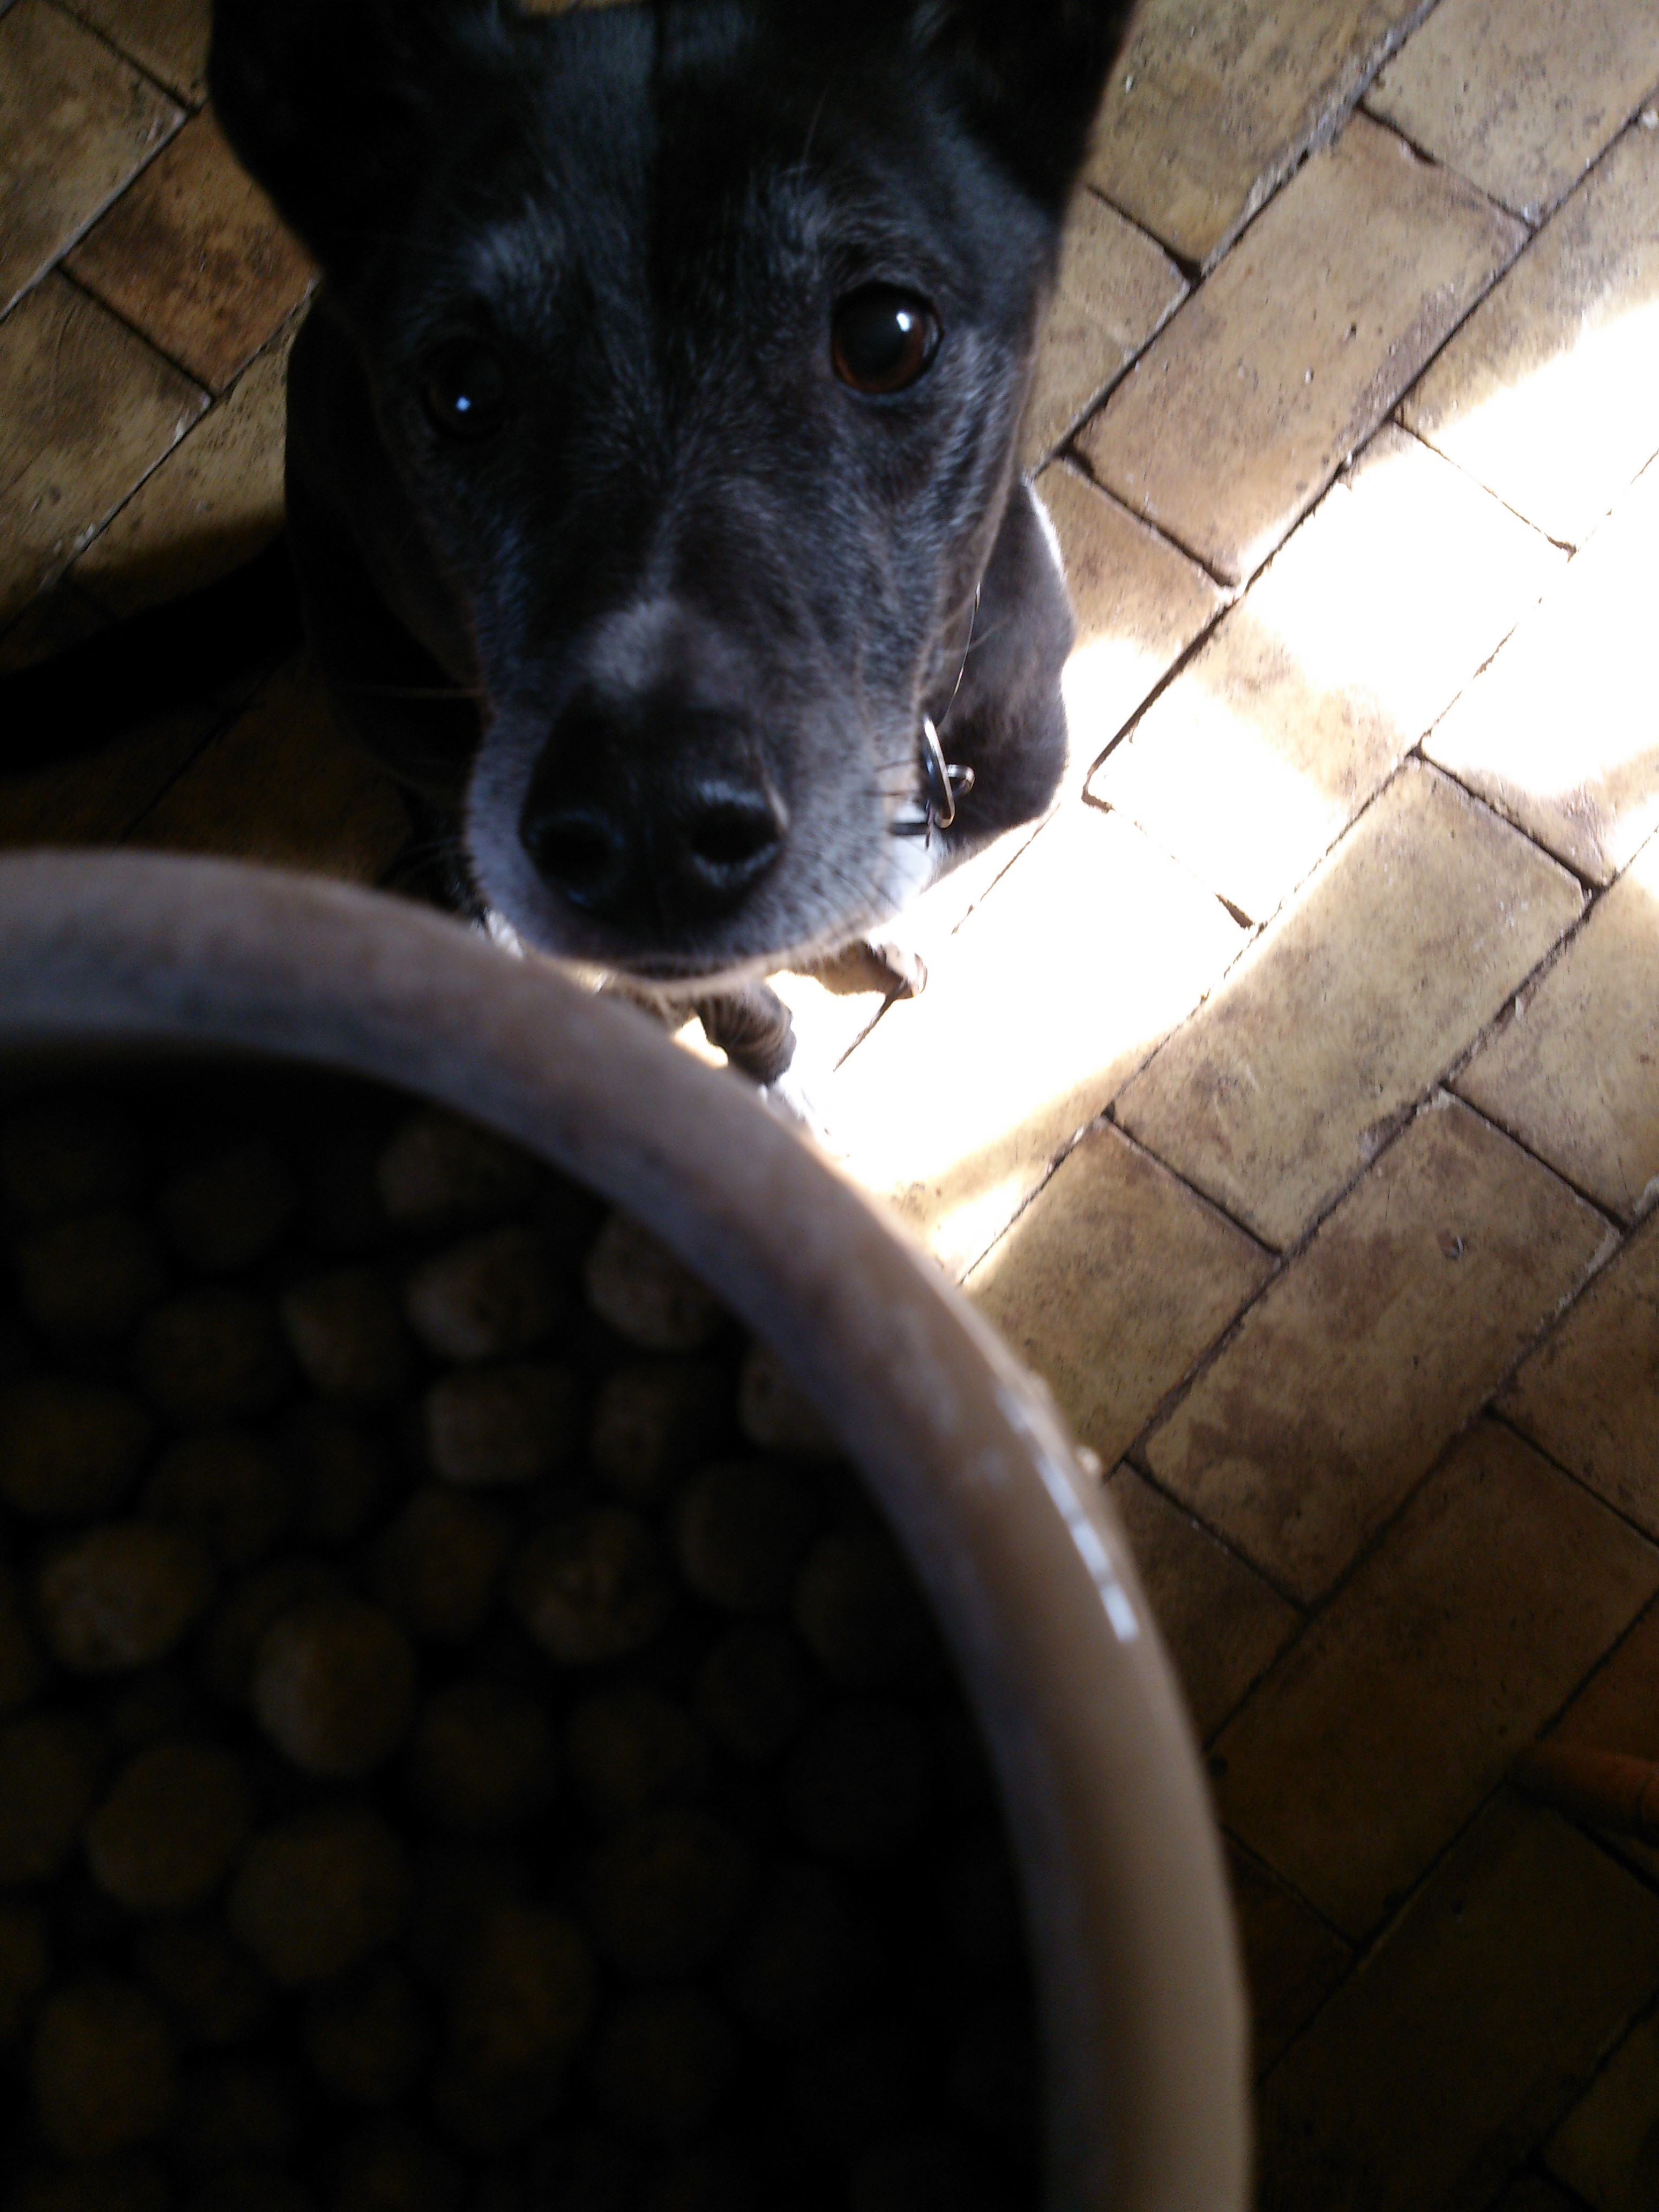 To avoid problems around food, dogs should be fed when they are calm. Dog's leaving food, are stressed dogs!!